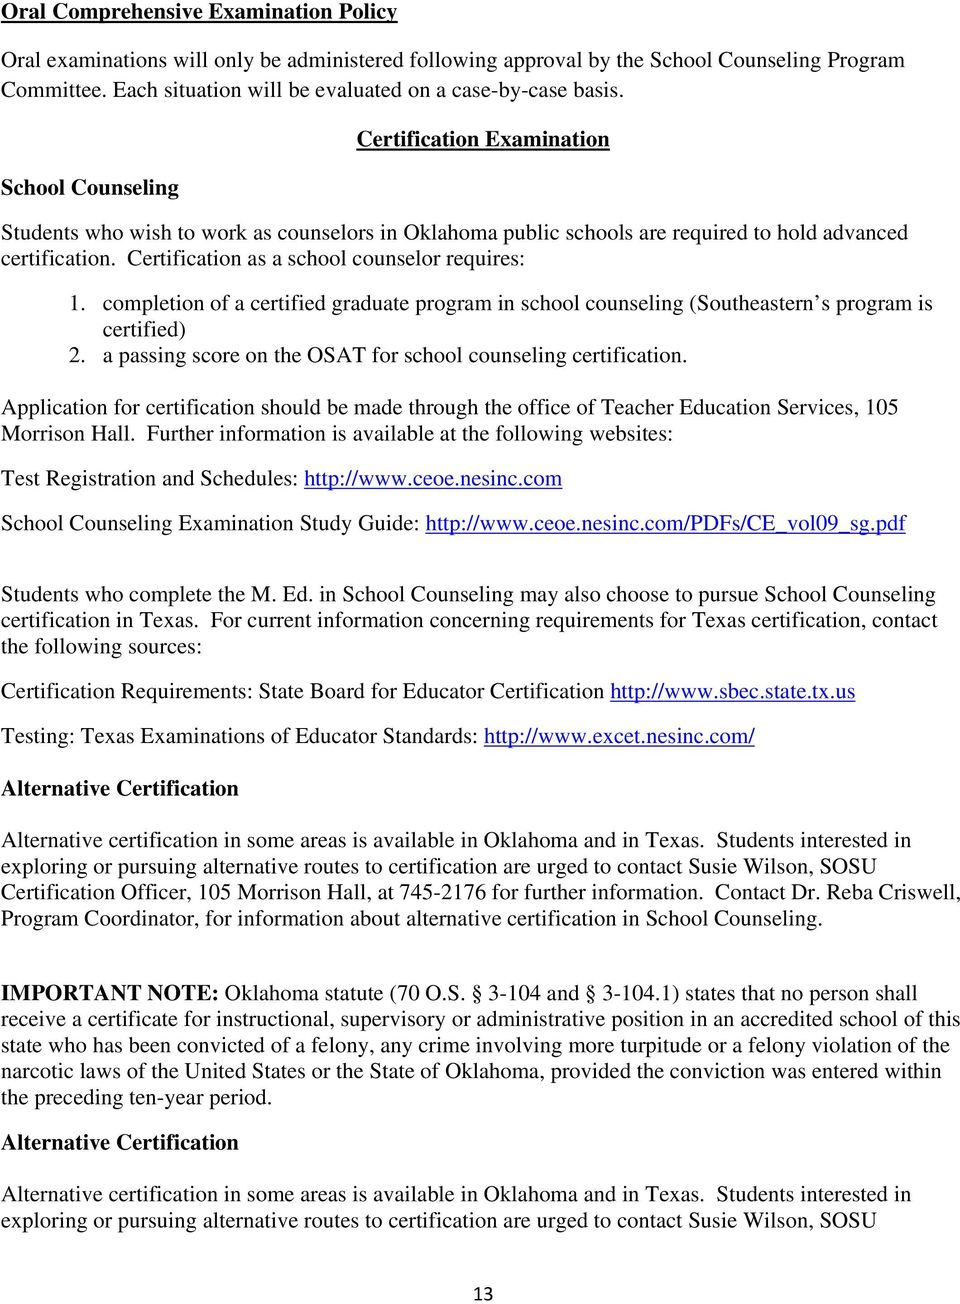 School Counseling Certification Examination Students who wish to work as counselors in Oklahoma public schools are required to hold advanced certification.